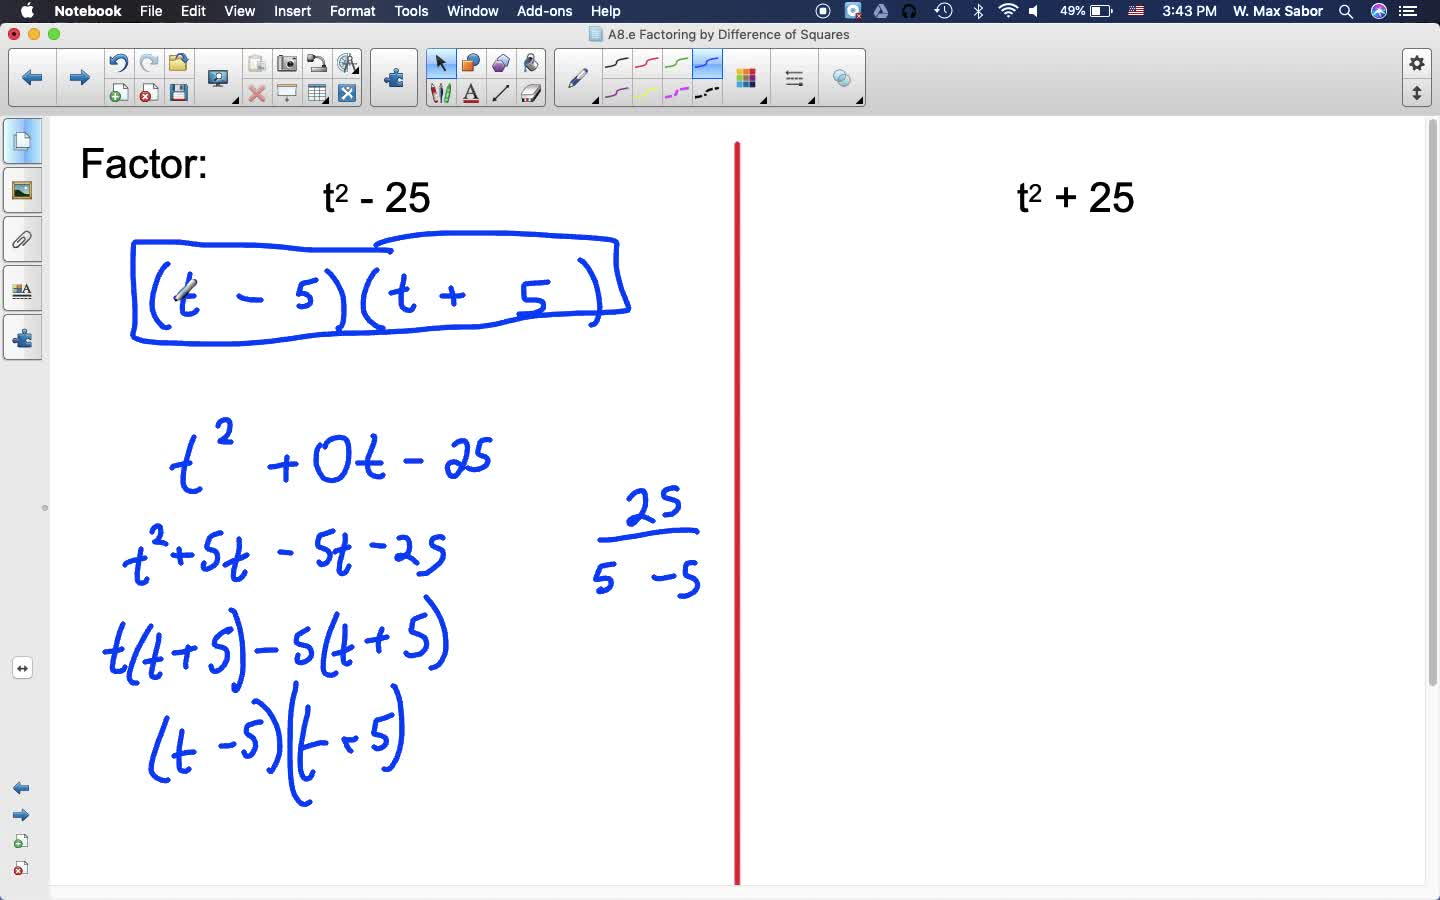 A8.e Factoring by Difference of Squares